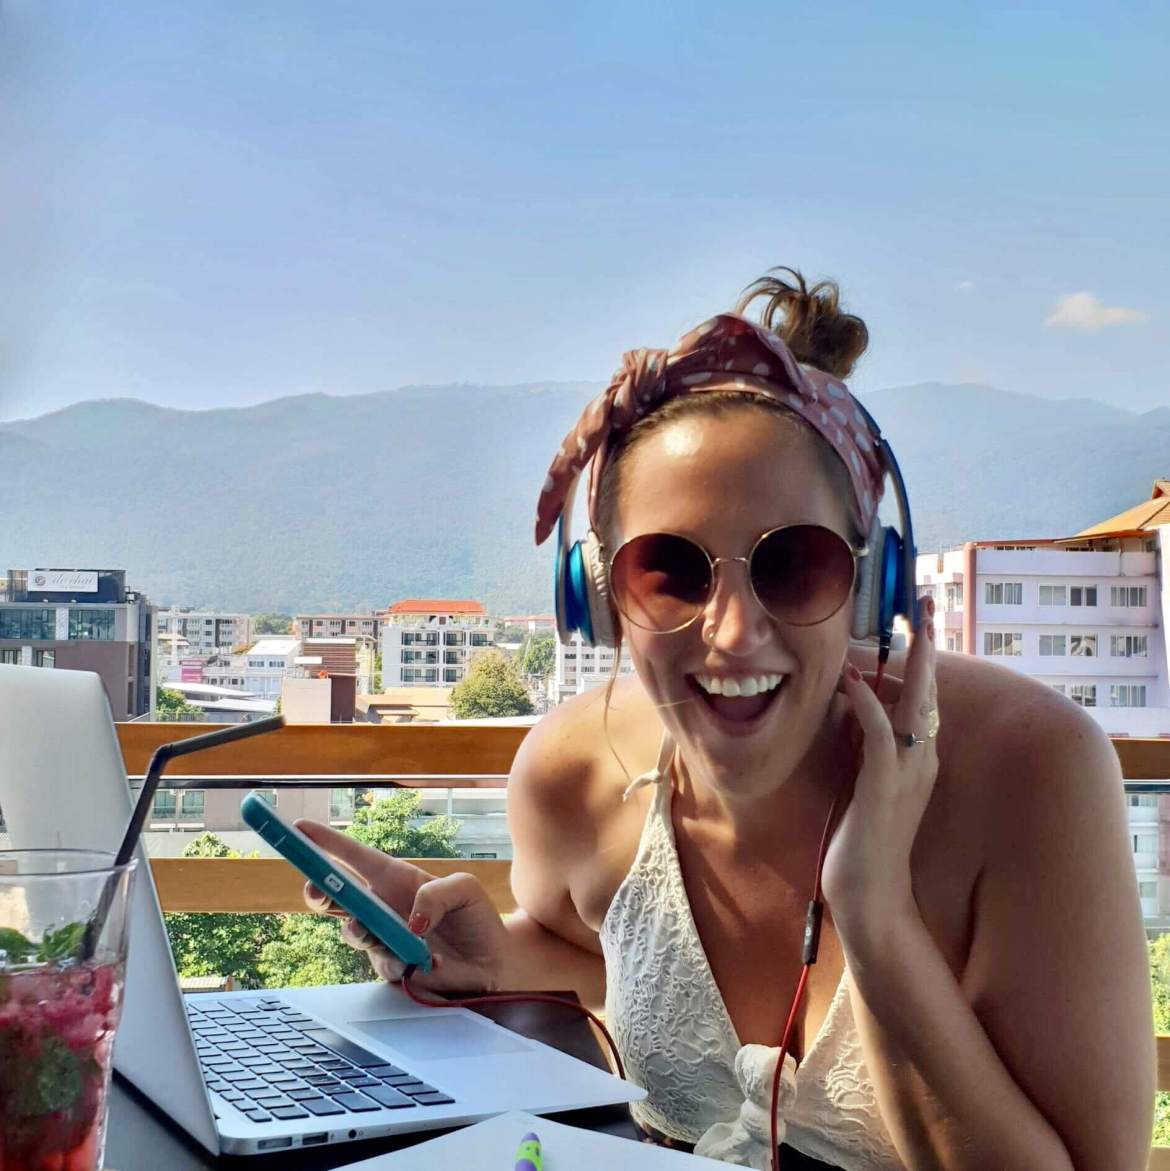 woman with headphones and sunglasses looking into camera, holding mobile phone